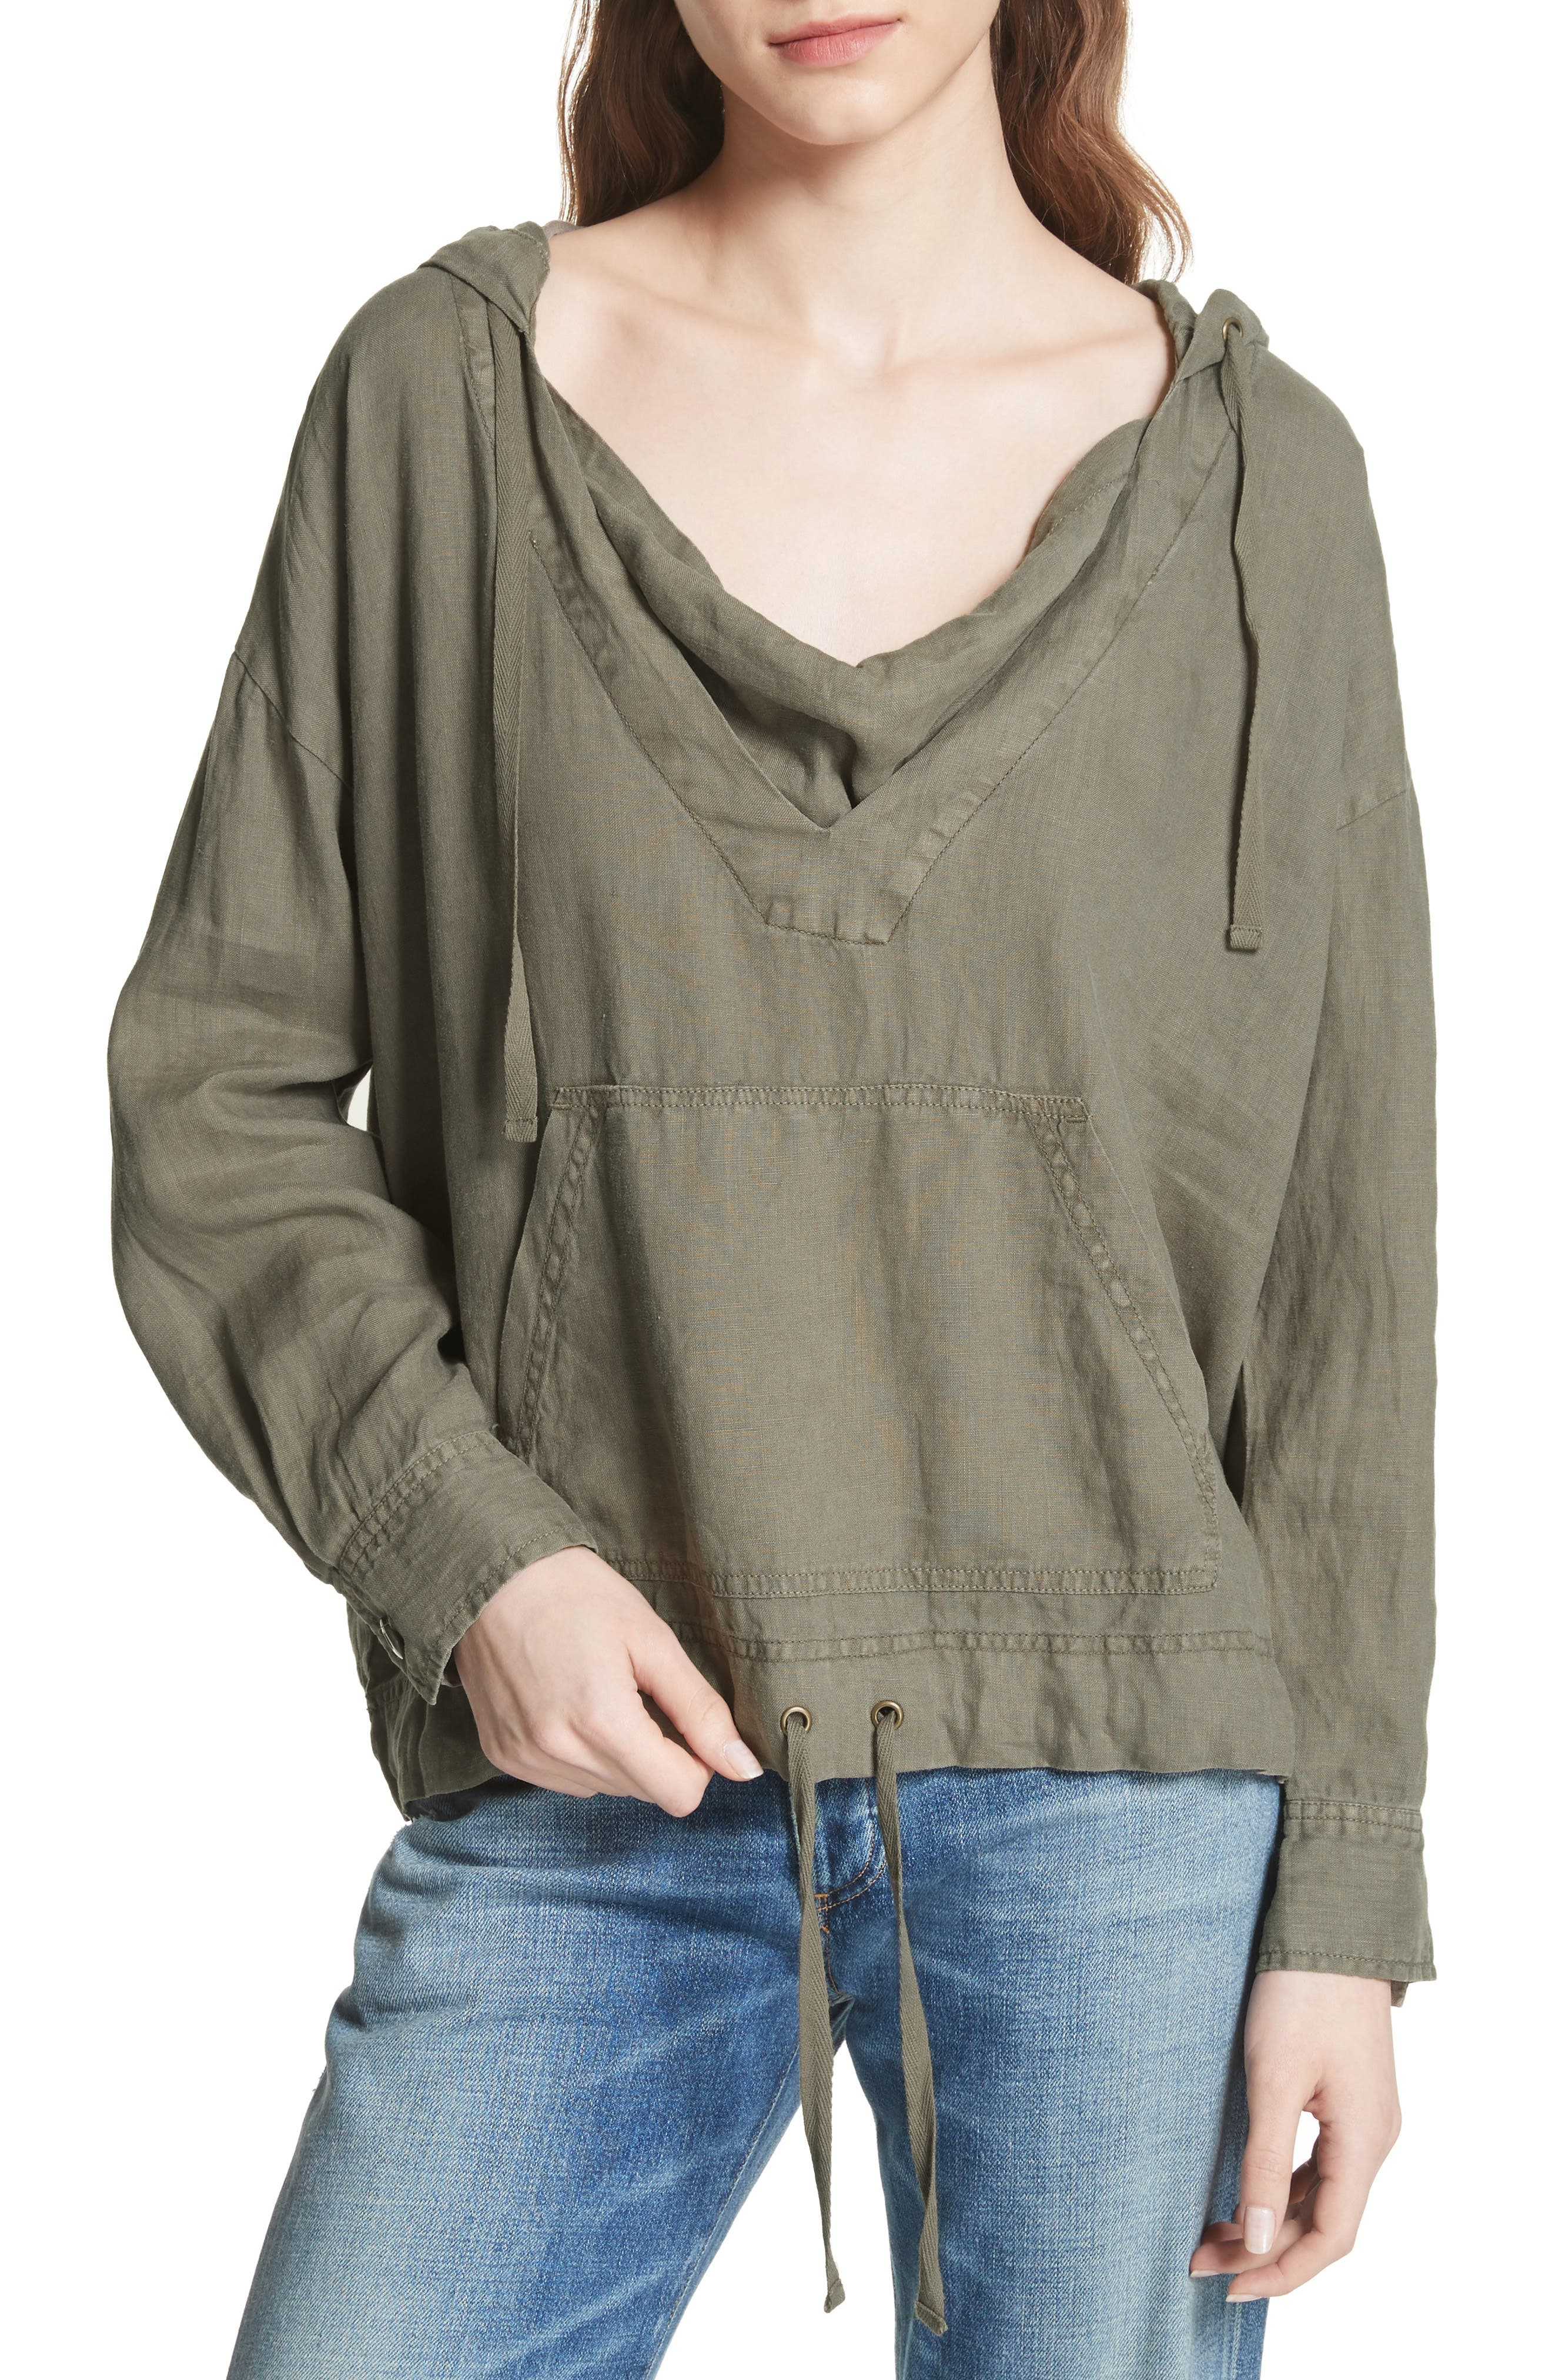 Dalal Linen Hoodie Top,                         Main,                         color,